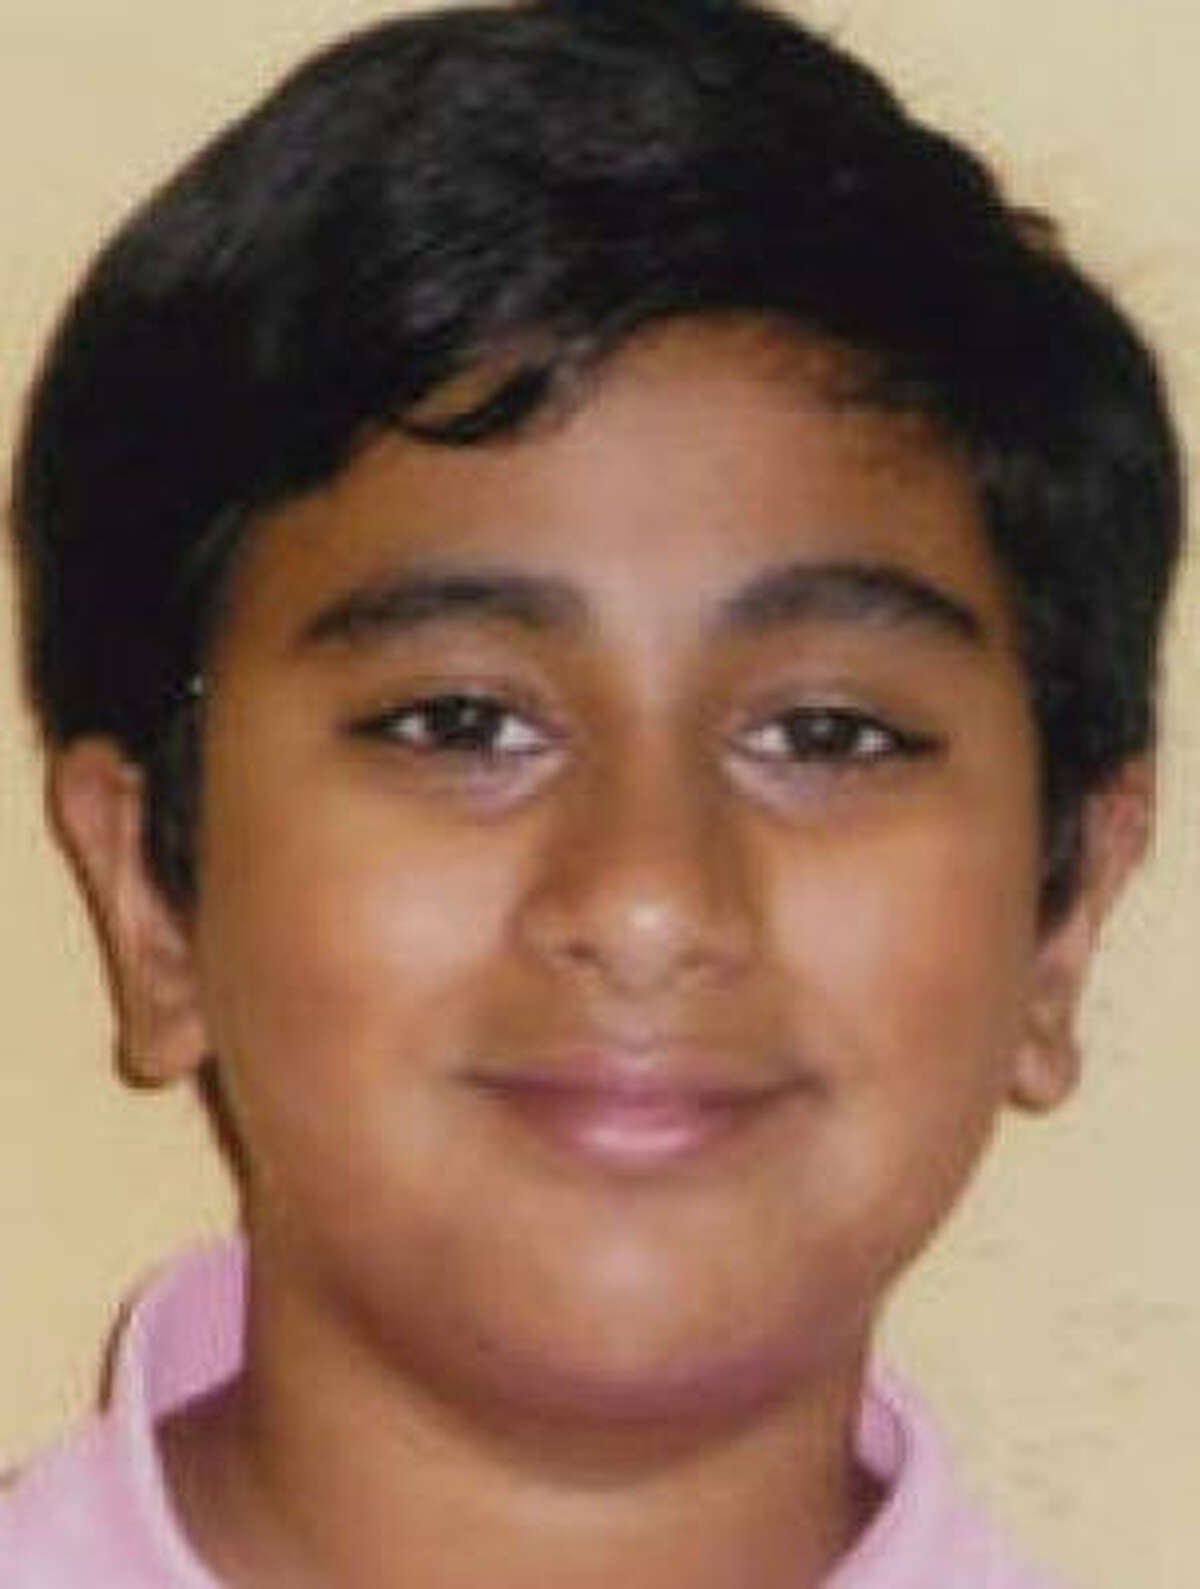 Last year, Aditya Chemudupaty placed 12th in the spelling tournament.